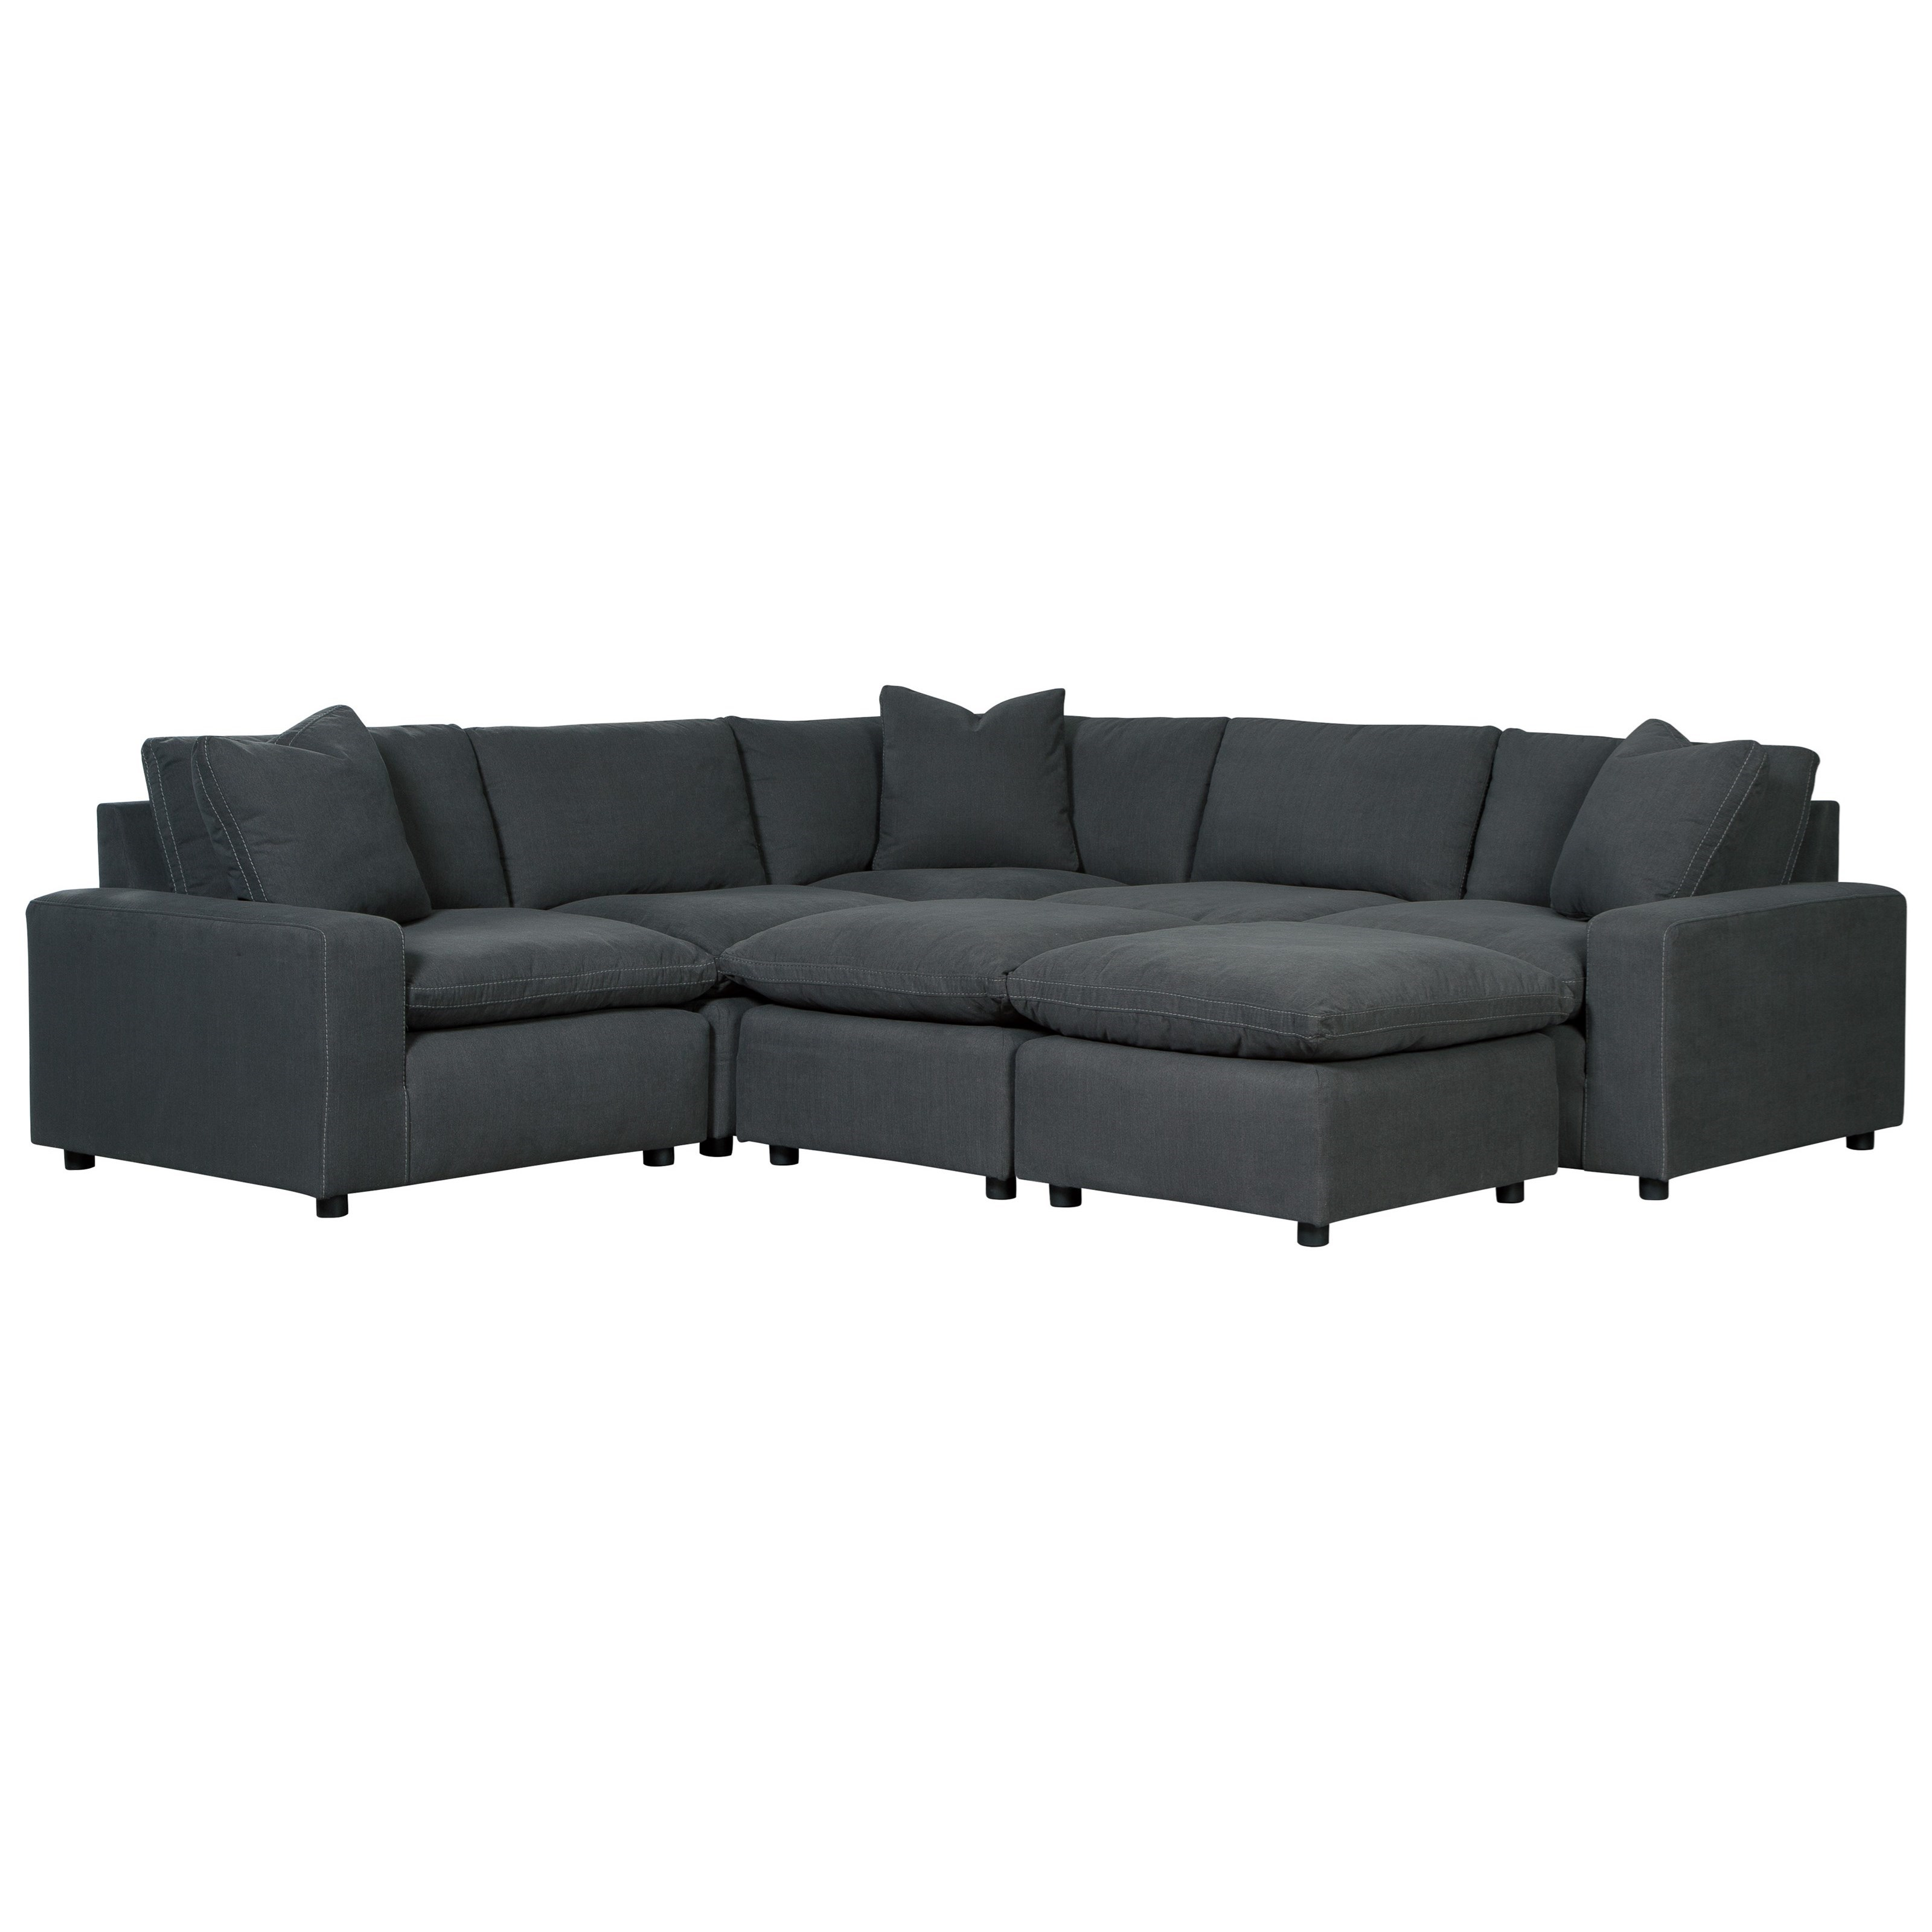 Savesto 7-Piece Sectional Set by Signature Design by Ashley at Northeast Factory Direct